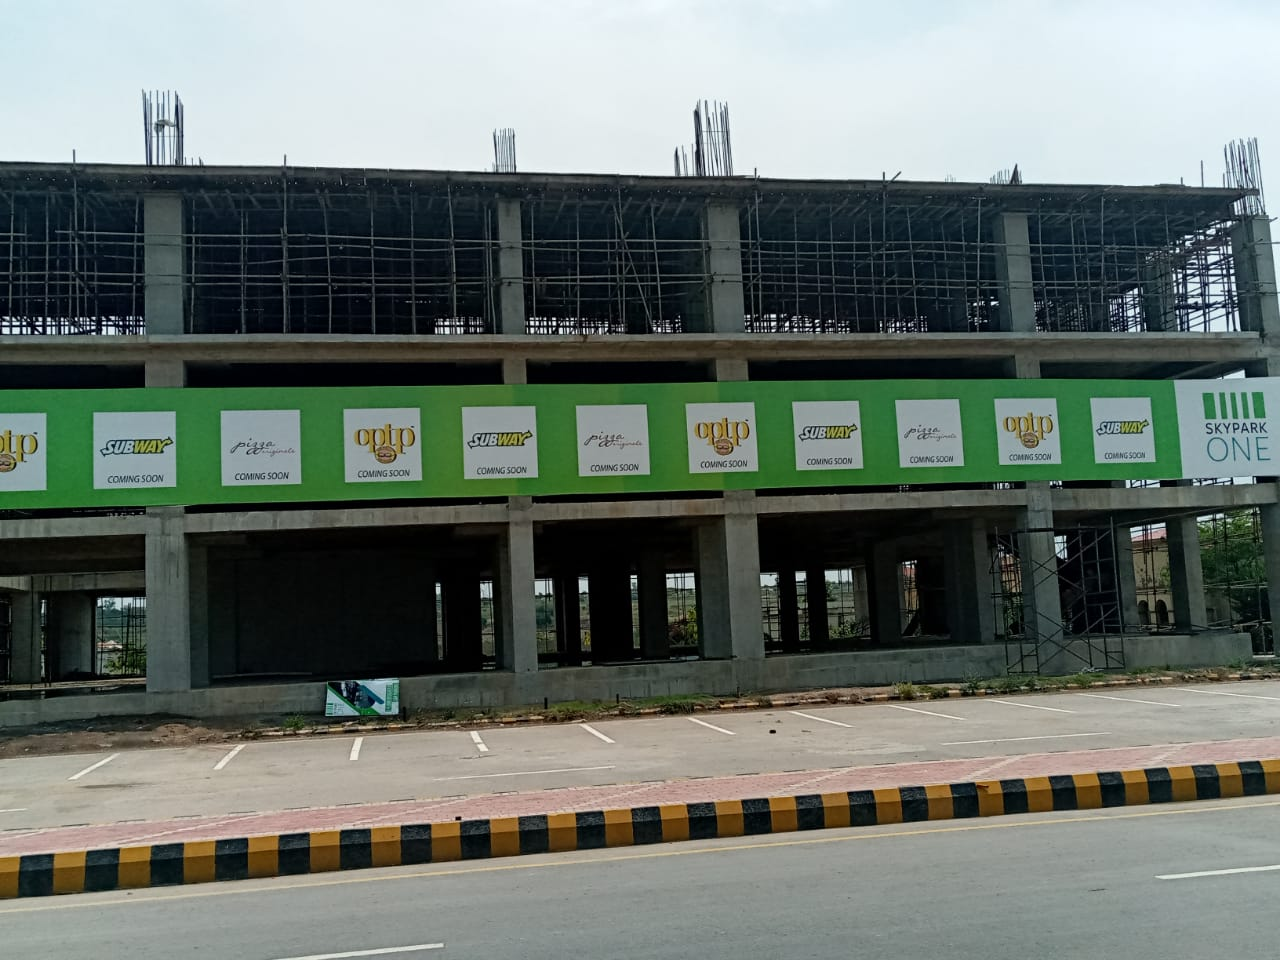 skypark one gulberg greens- optp and subway signed up